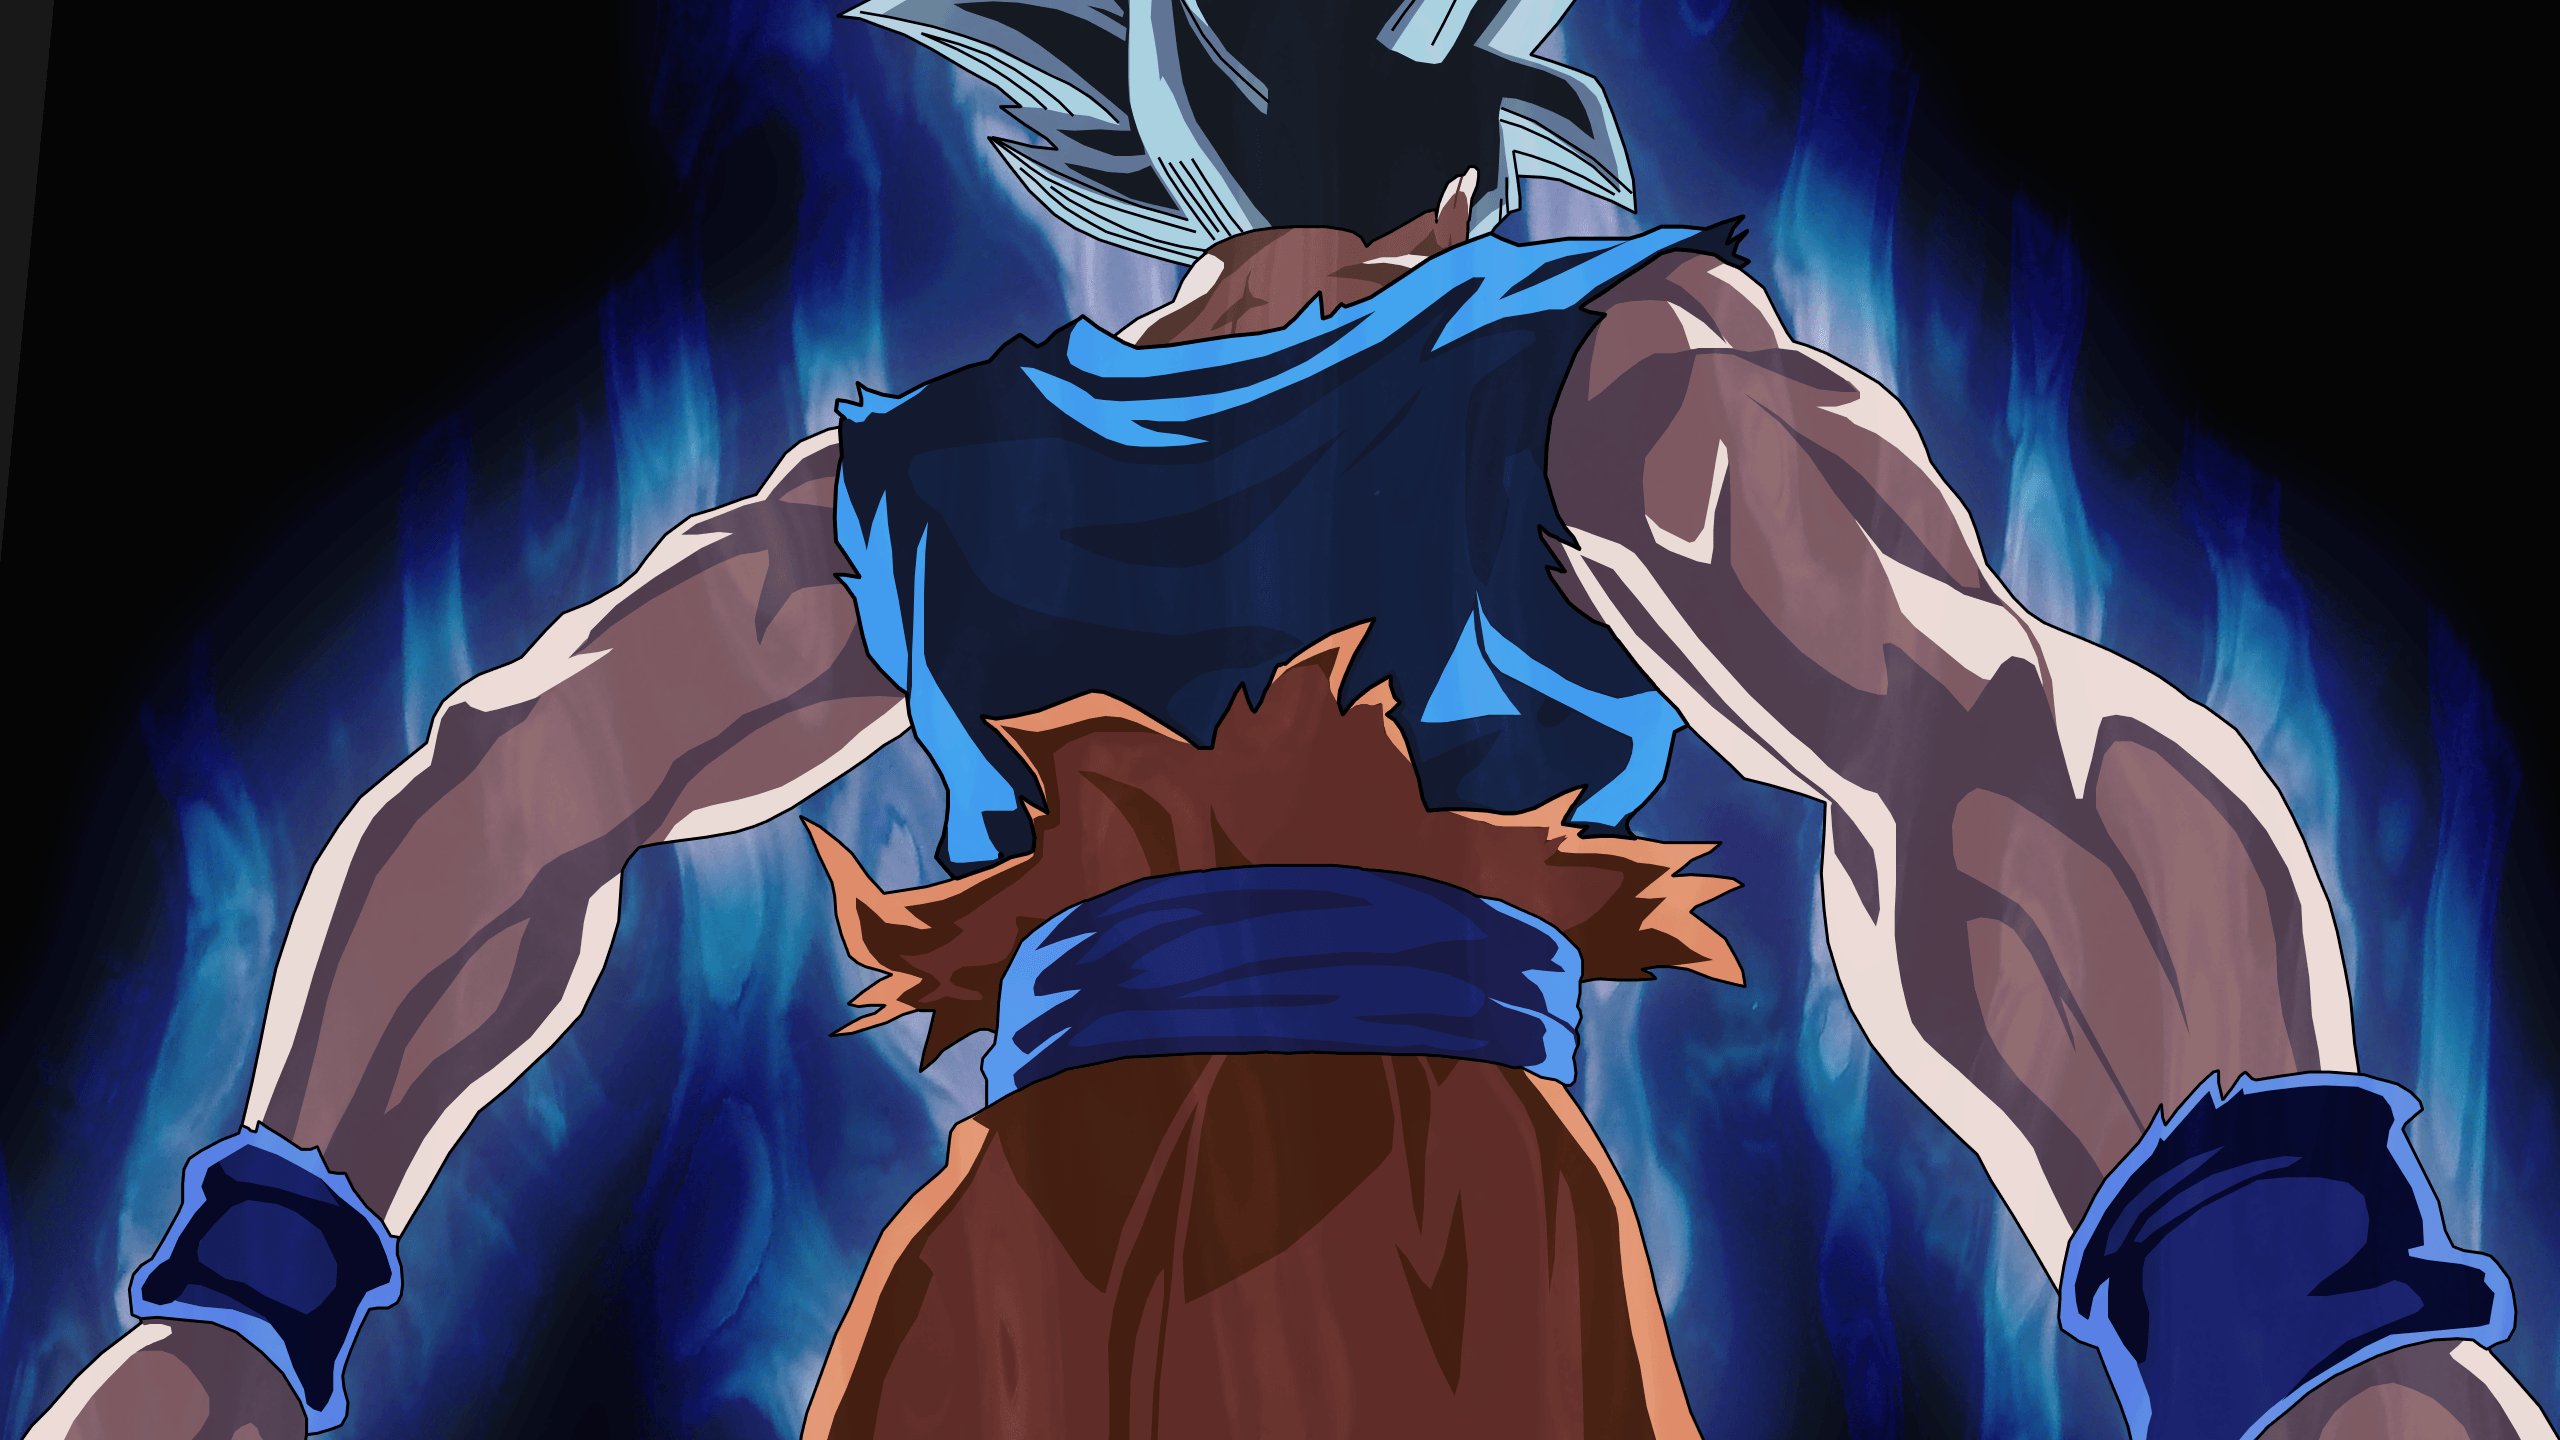 Goku Wallpaper 40 2560x1440 Pixel Wallpaperpass